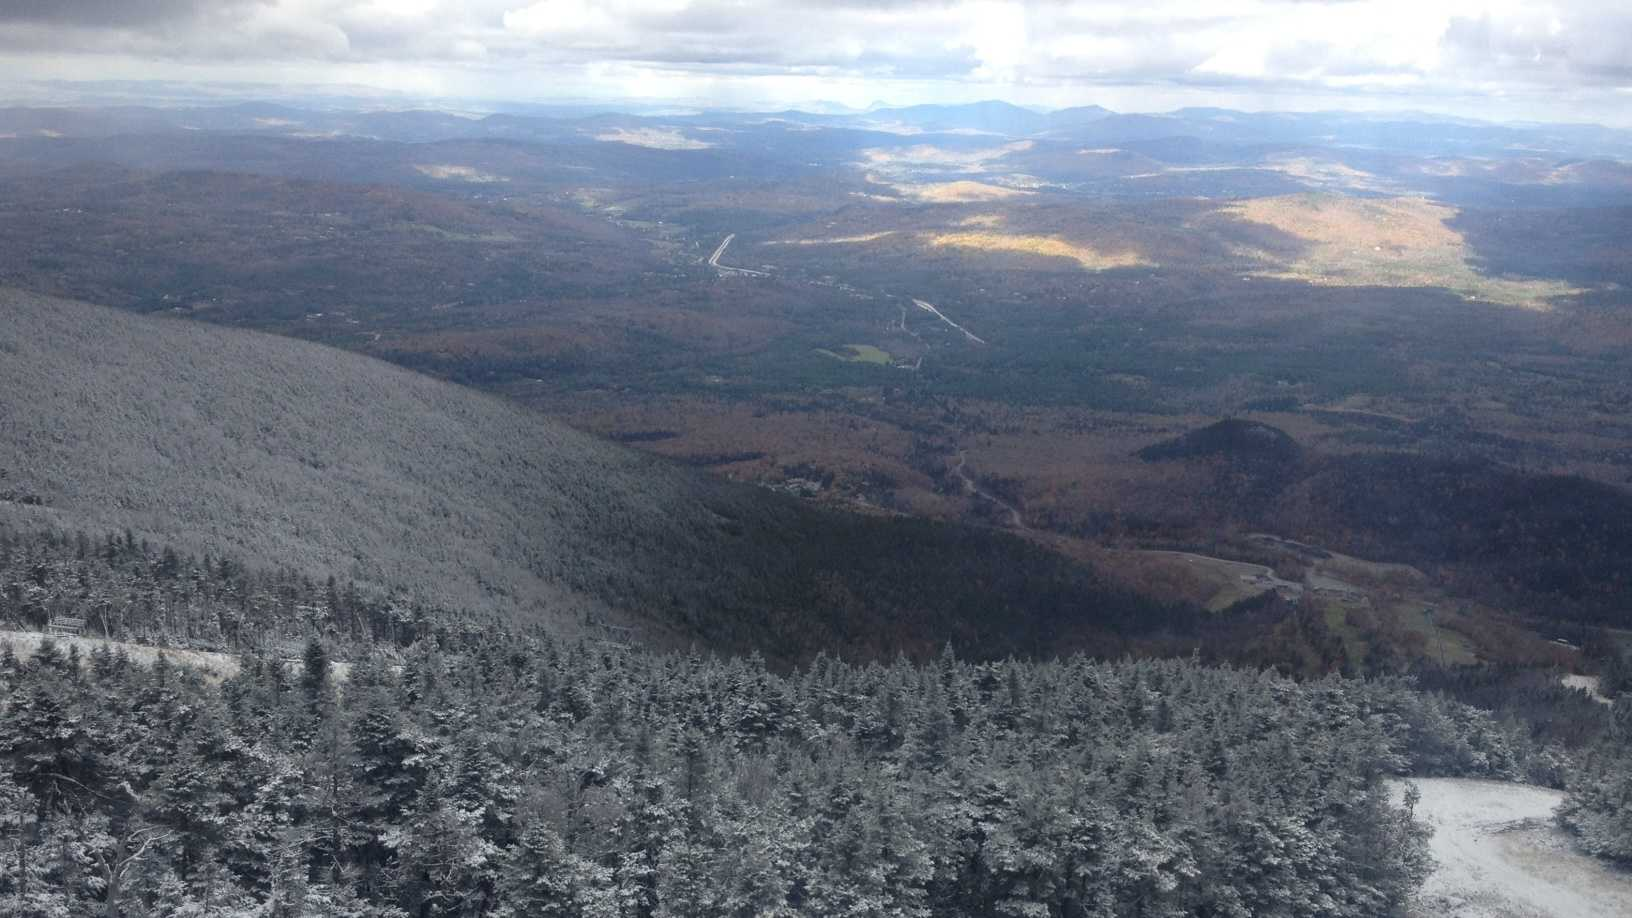 Snow falls on mountains of Northern NH